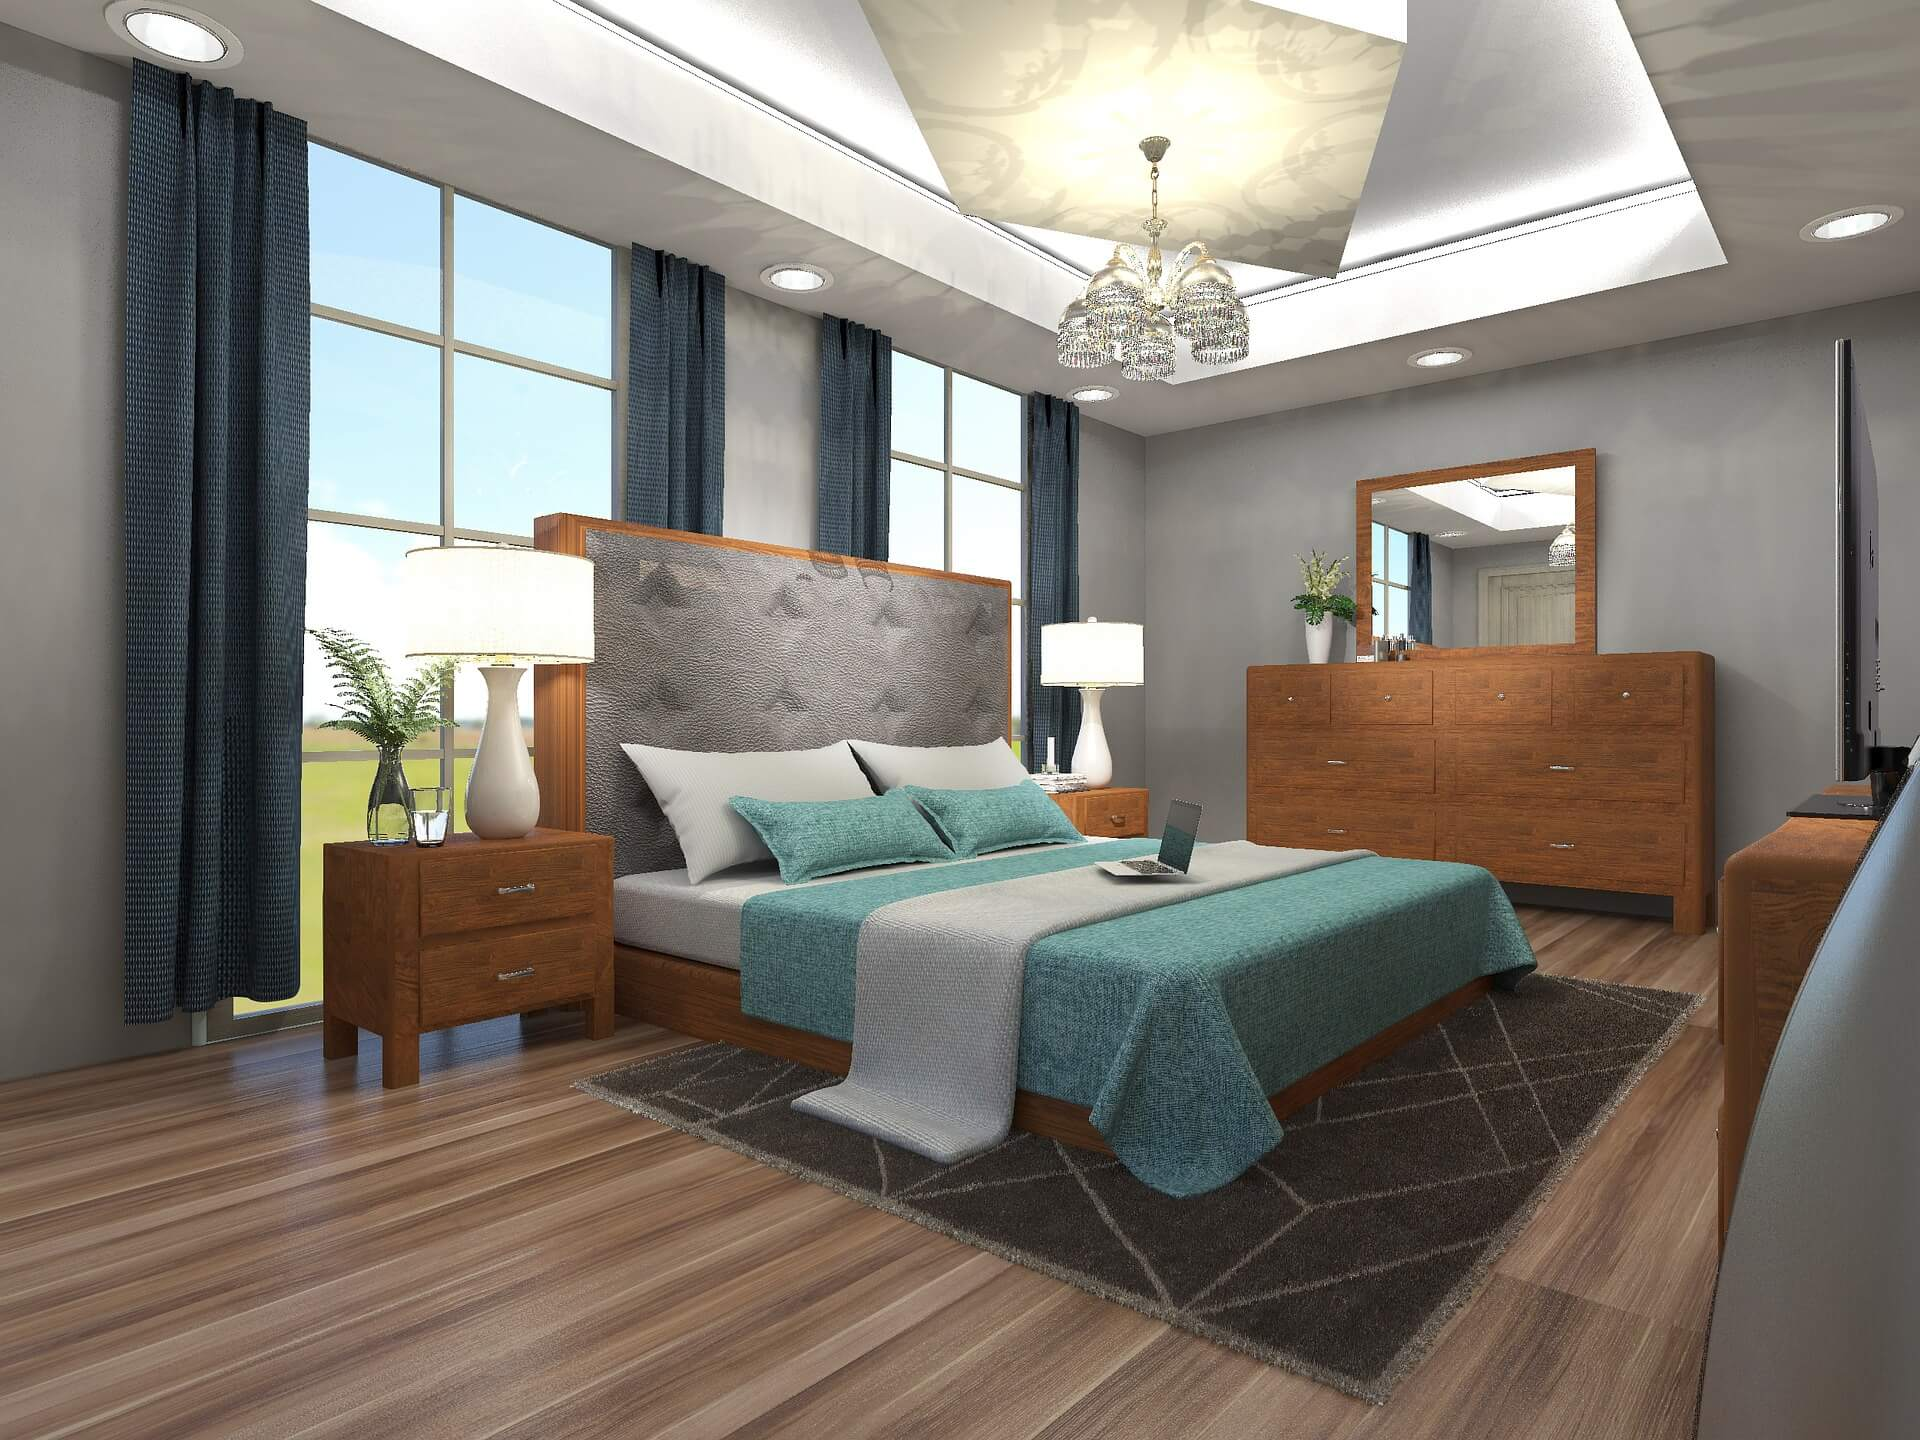 investing in real estate for airbnb rentals can be a great. Black Bedroom Furniture Sets. Home Design Ideas